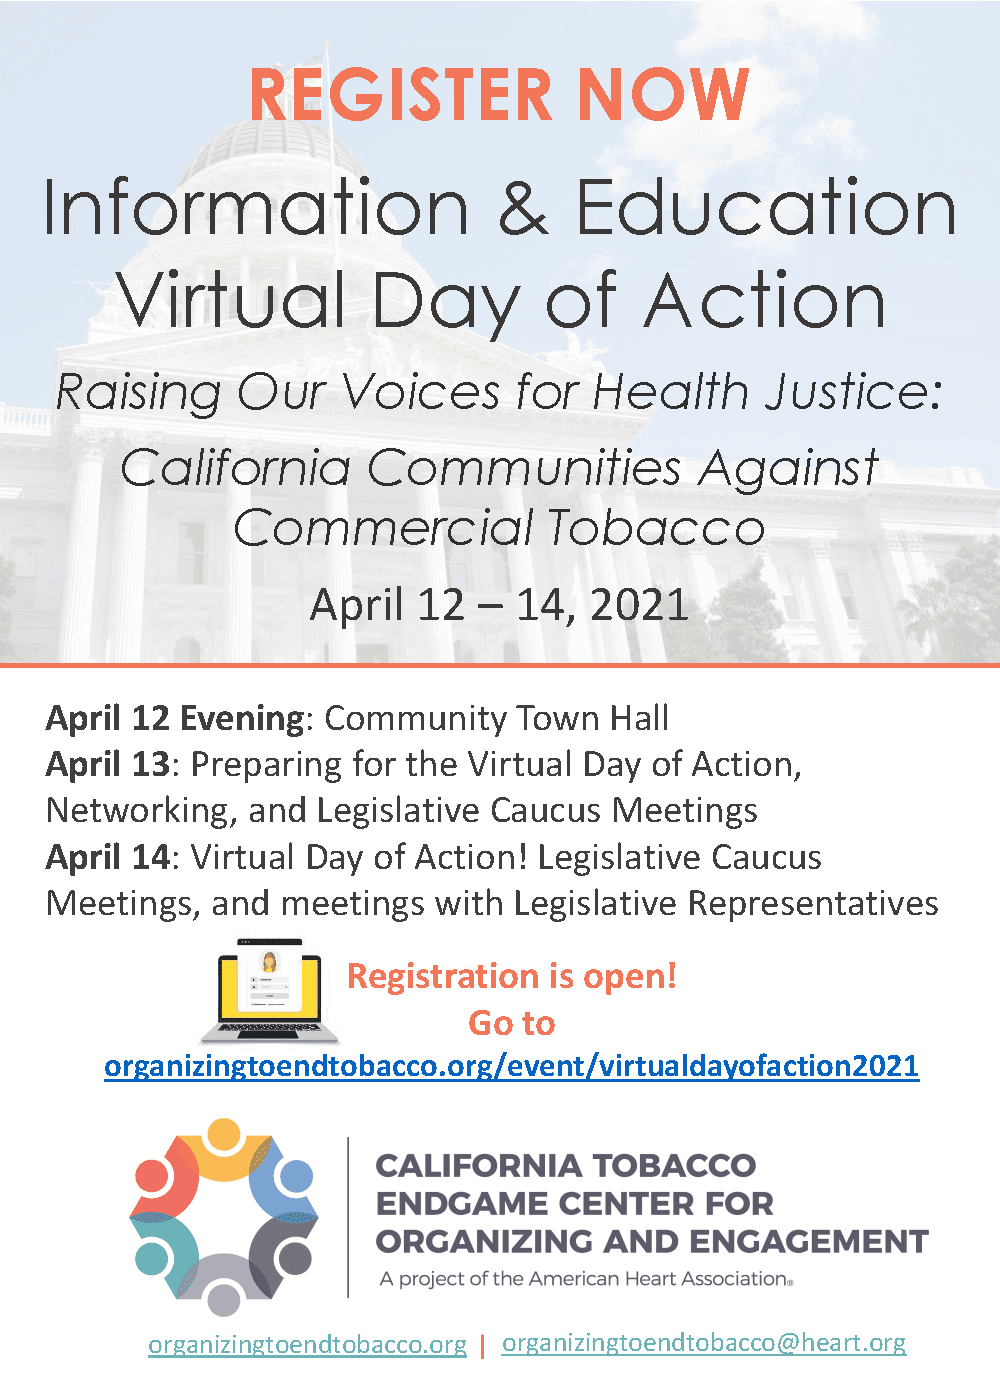 I and E Virtual Day of Action 2021 Register Now